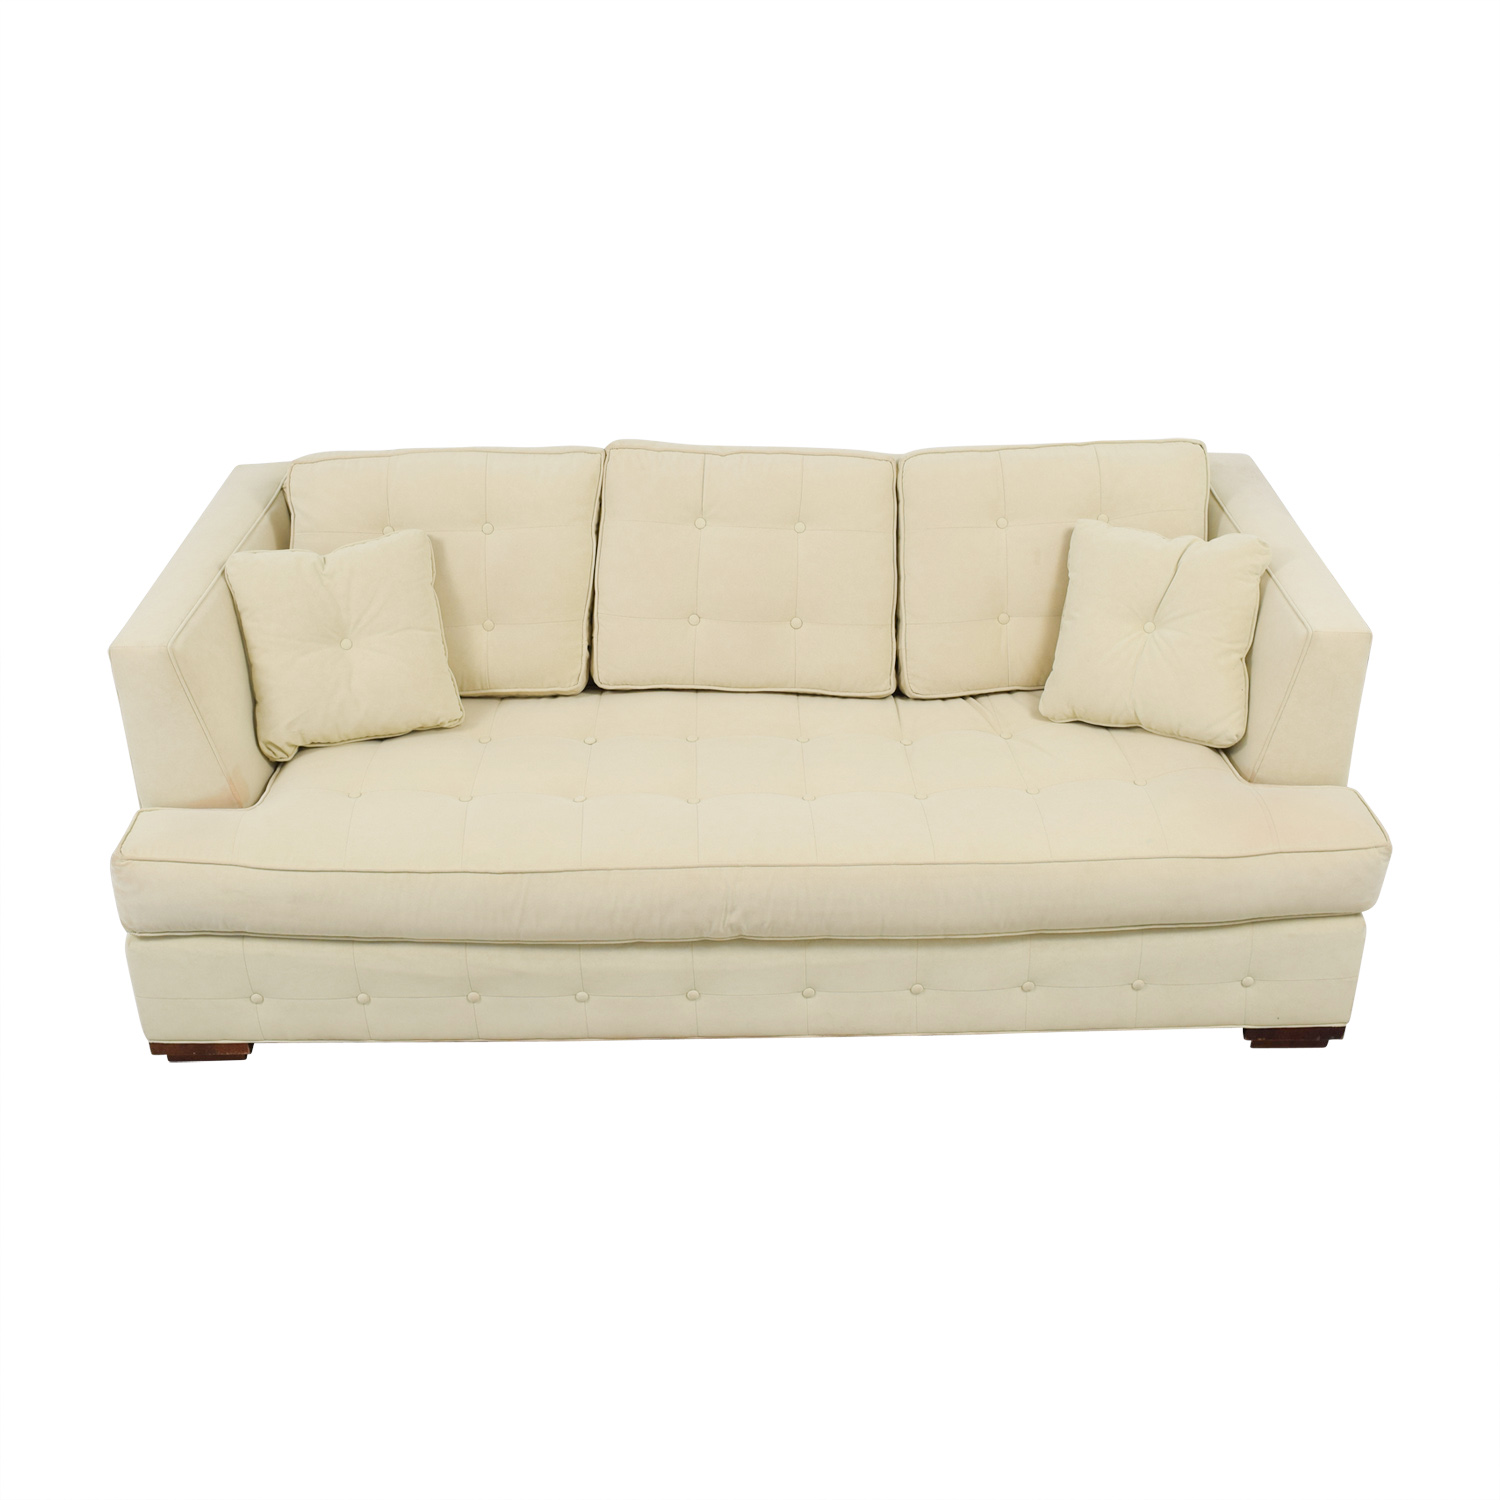 Shop Ethan Allen Pros Beige Tufted Single Cushion Sofa Ethan